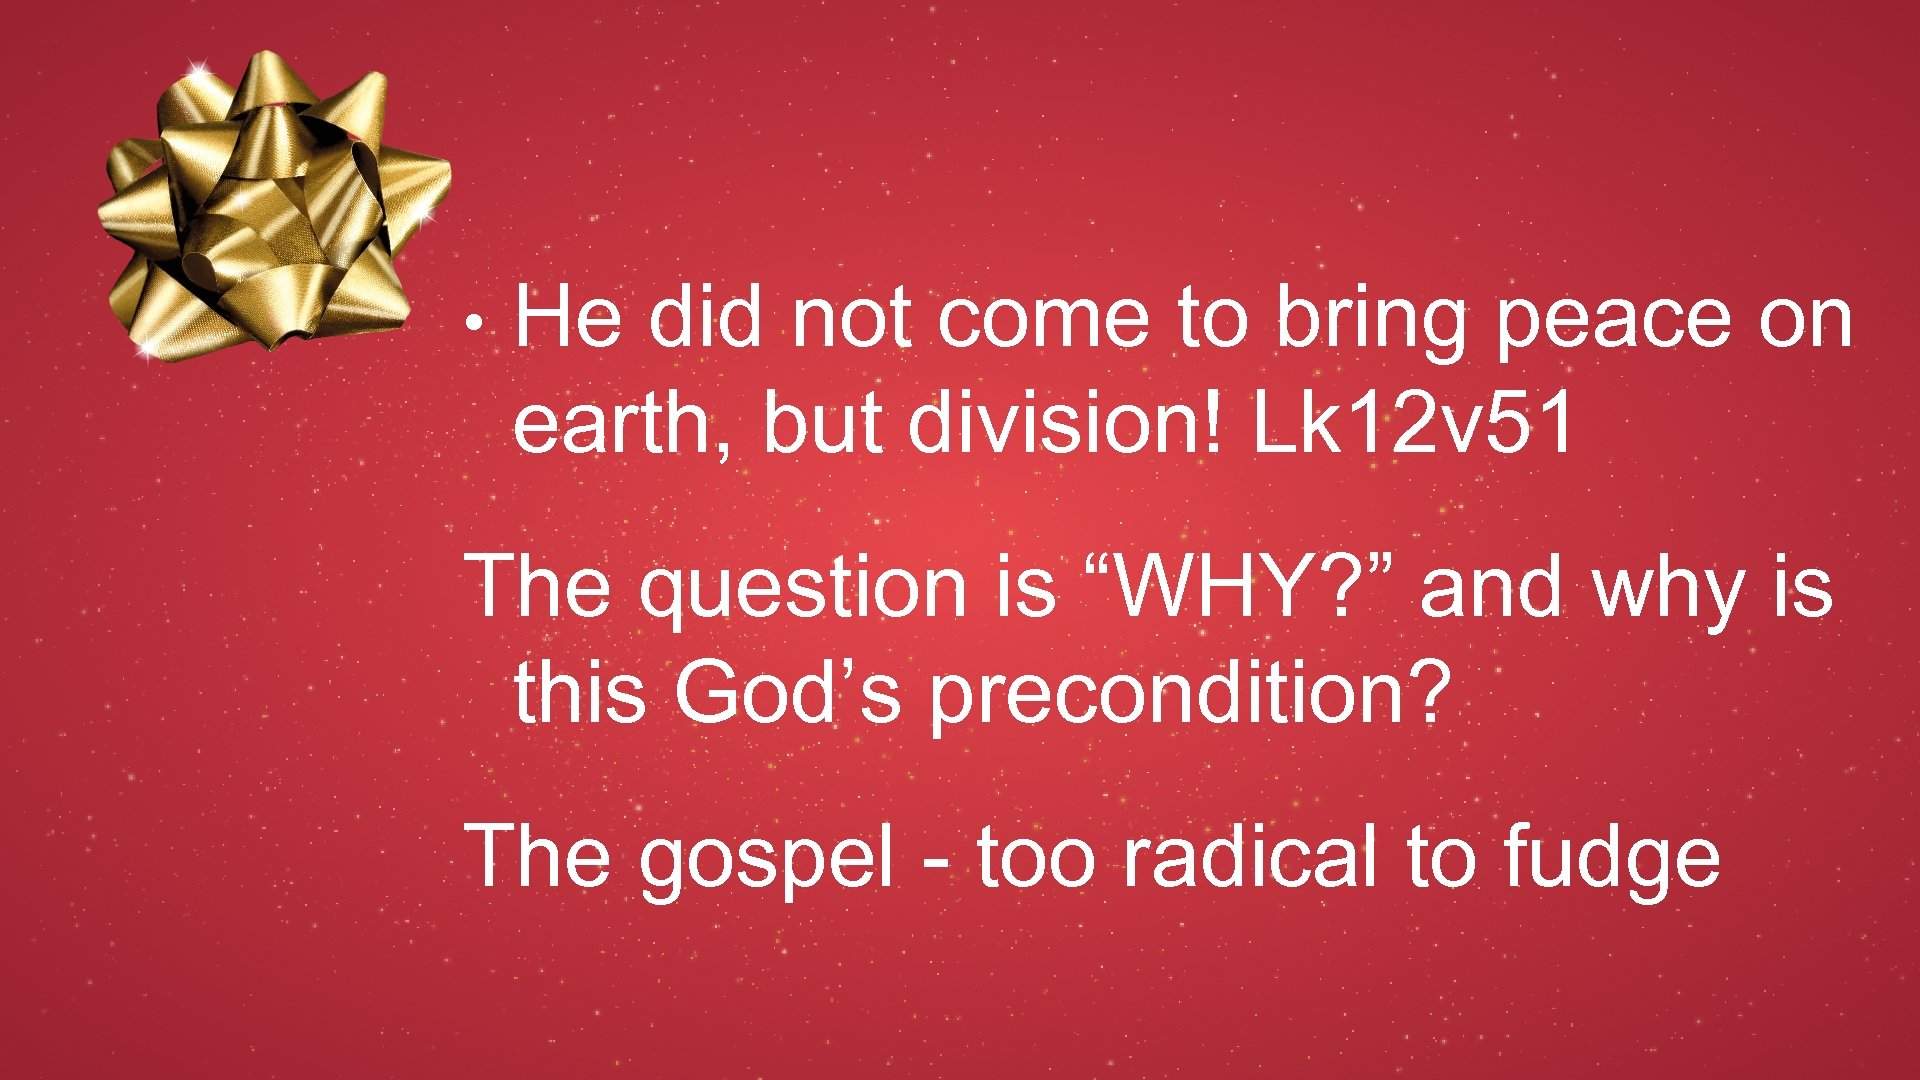 • He did not come to bring peace on earth, but division! Lk